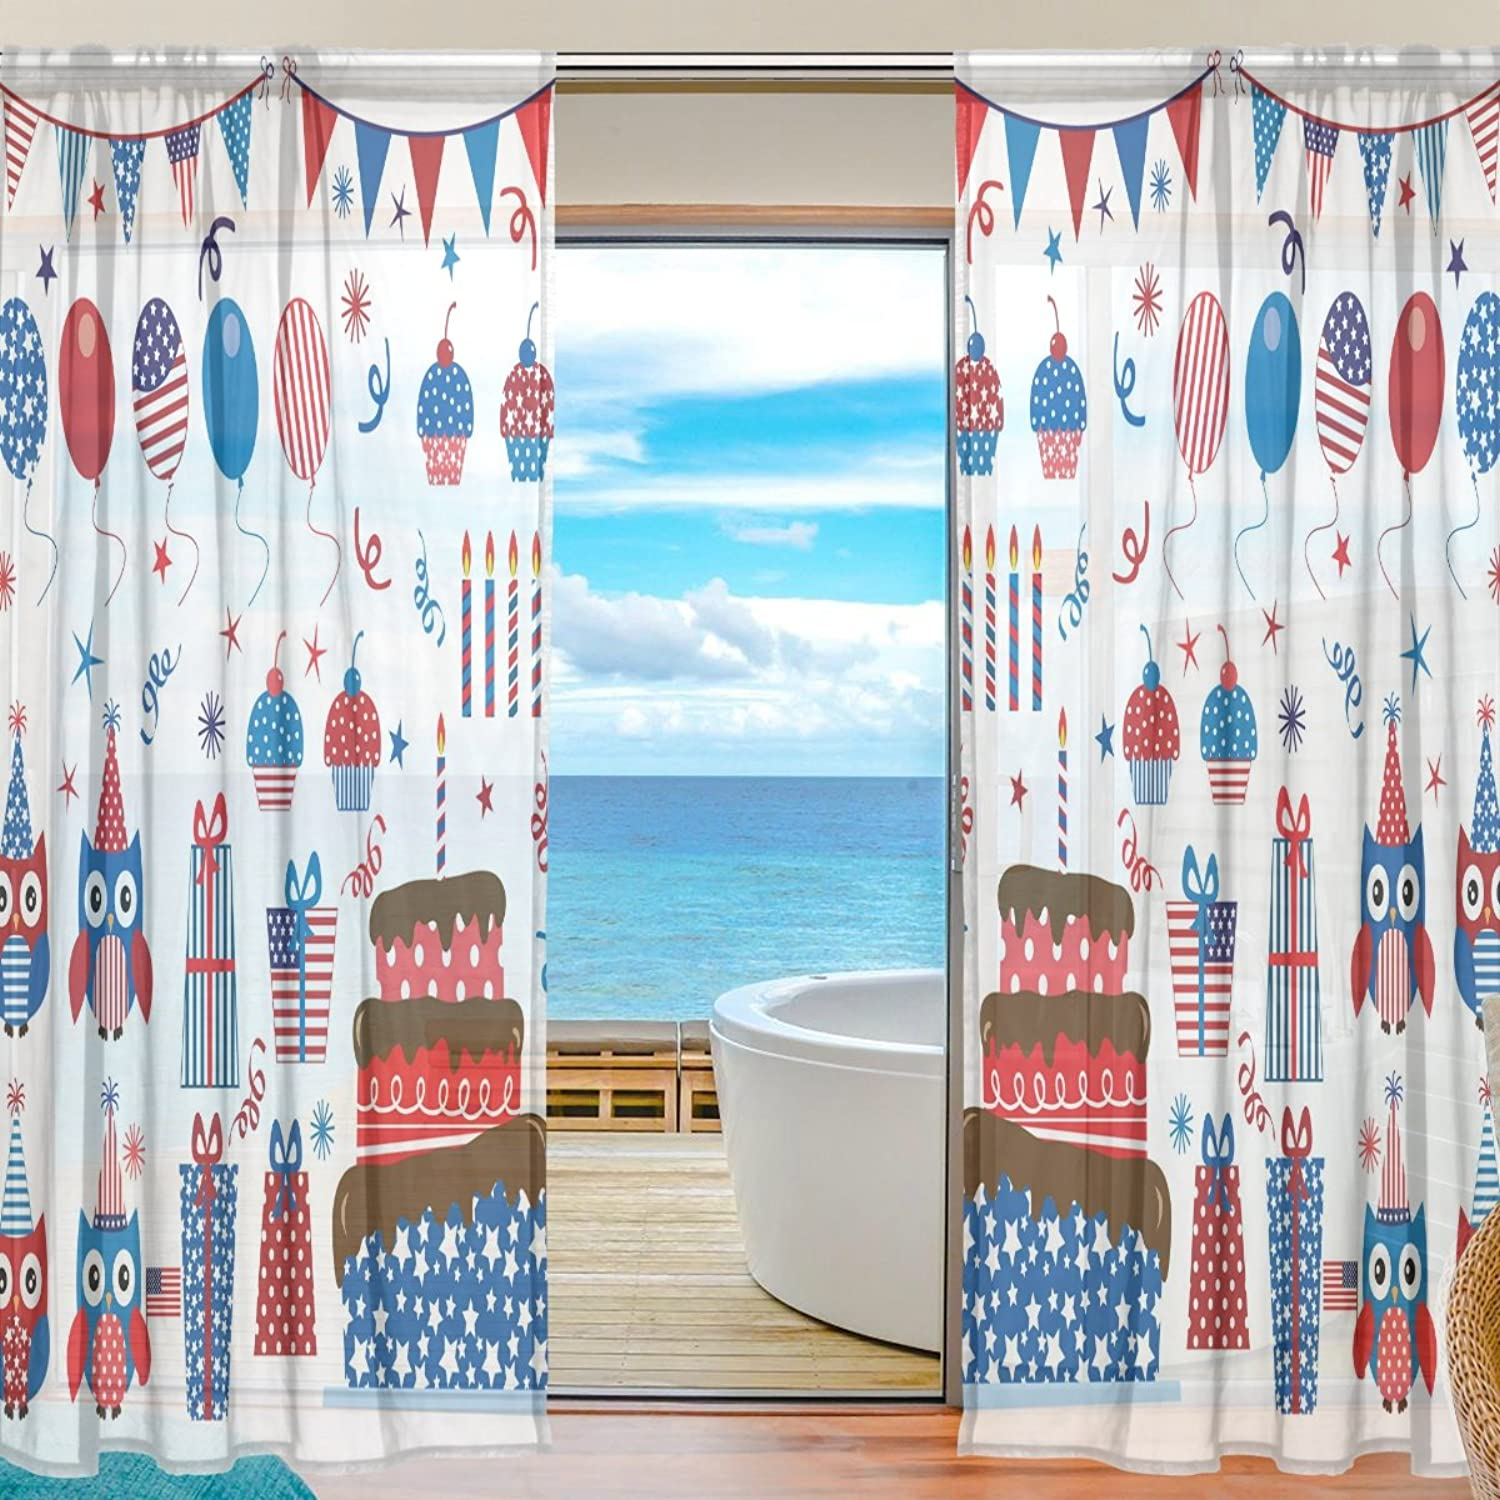 Vantaso Sheer Curtains 78 inch Long Fourth of July Patriotic Happy Owls for Kids Girls Bedroom Living Room Window Decorative 2 Panels